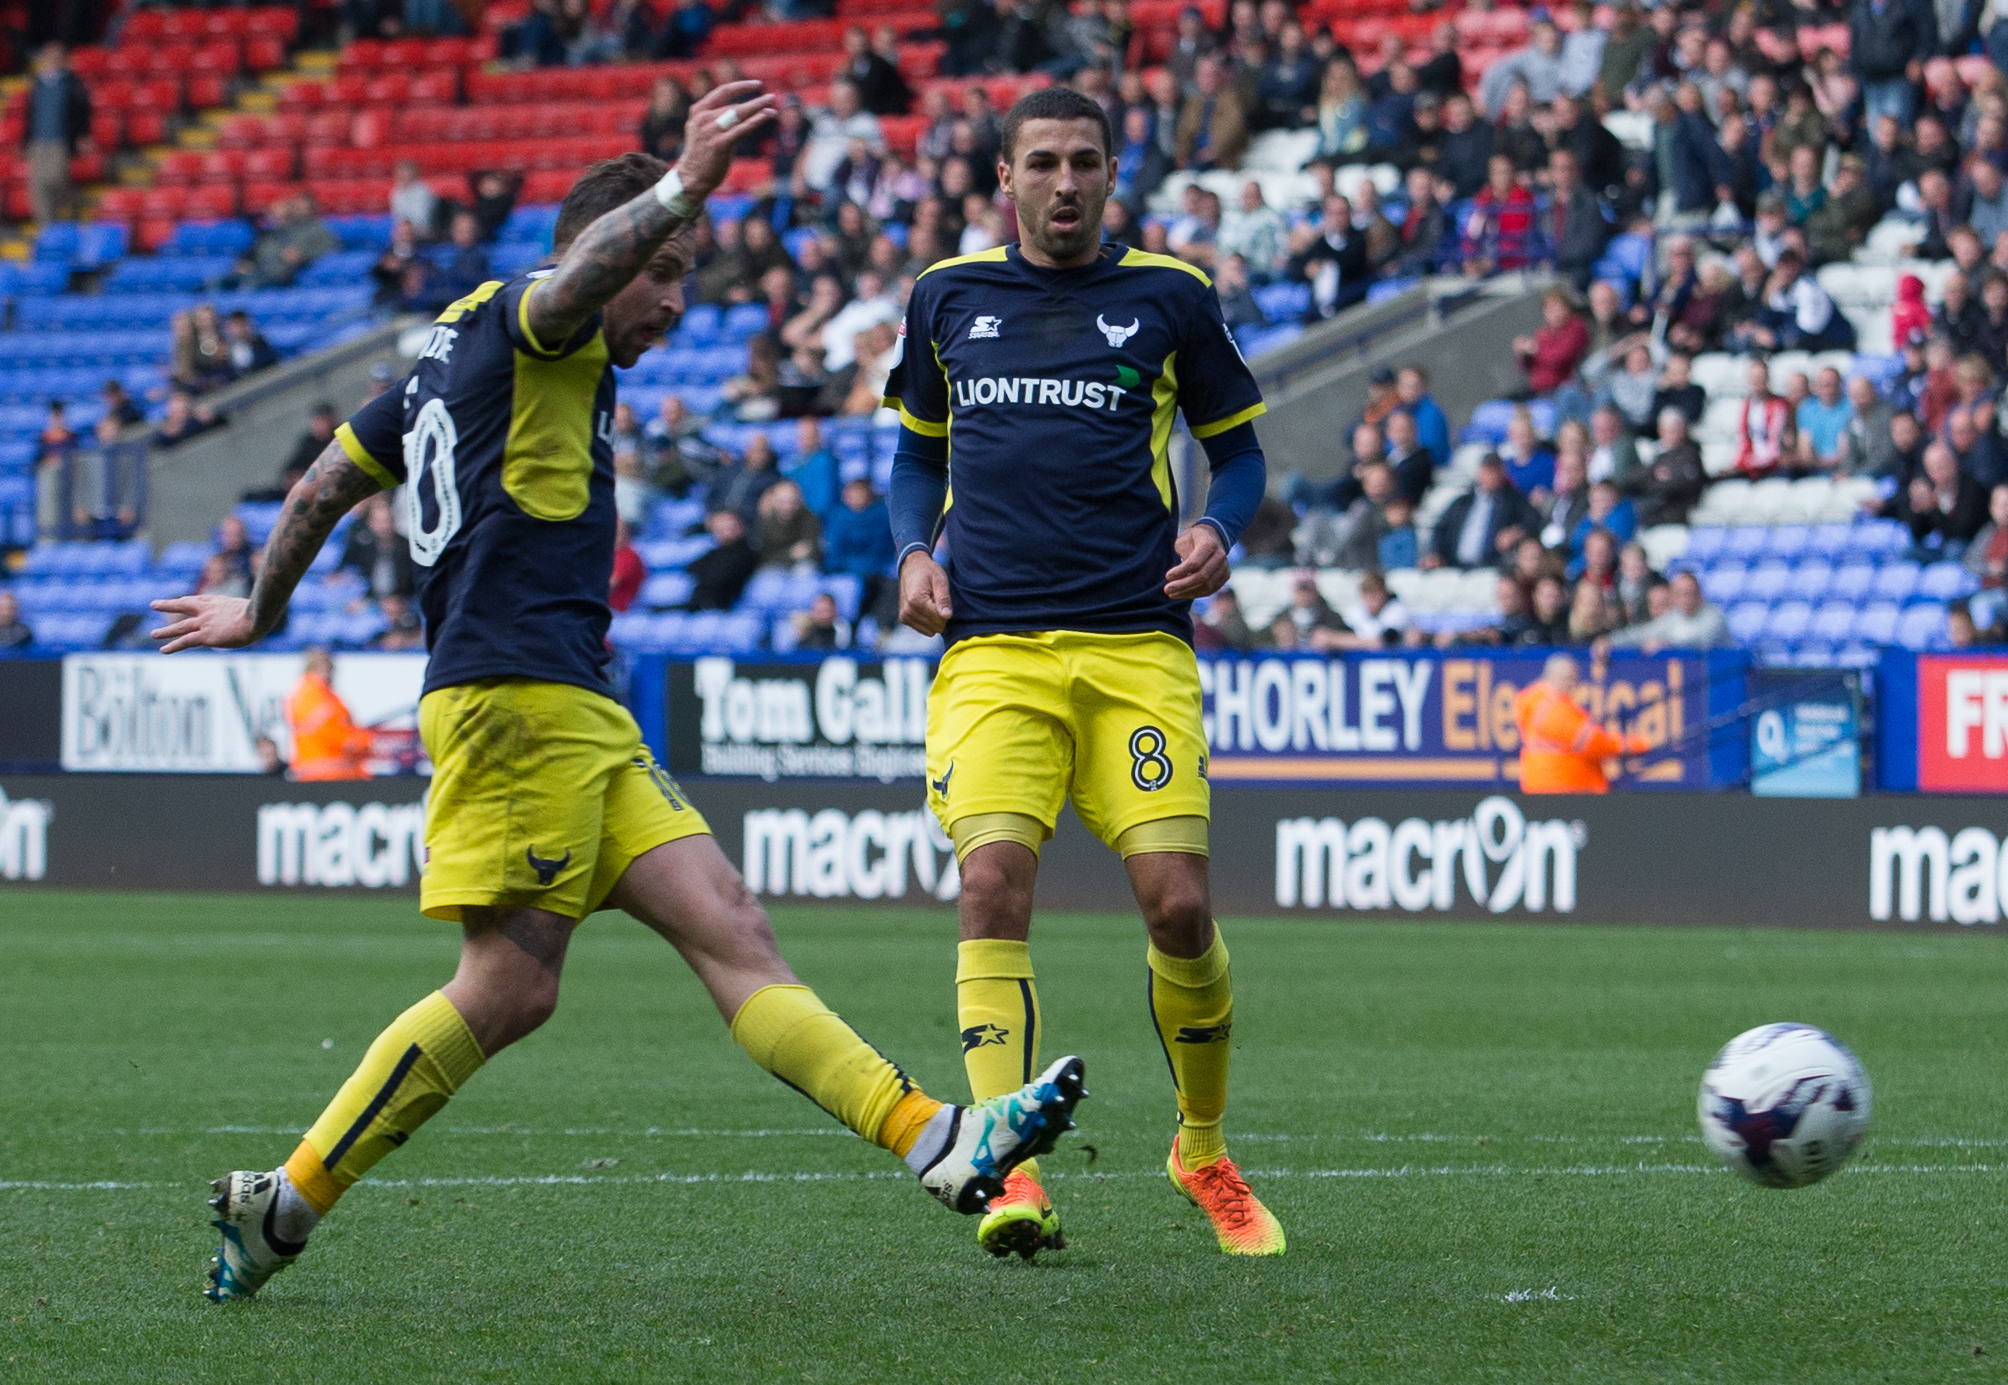 THAT SEALS IT: Chris Maguire strokes home to put Oxford United 2-0 ahead in the final minute of normal time Picture: James Williamson